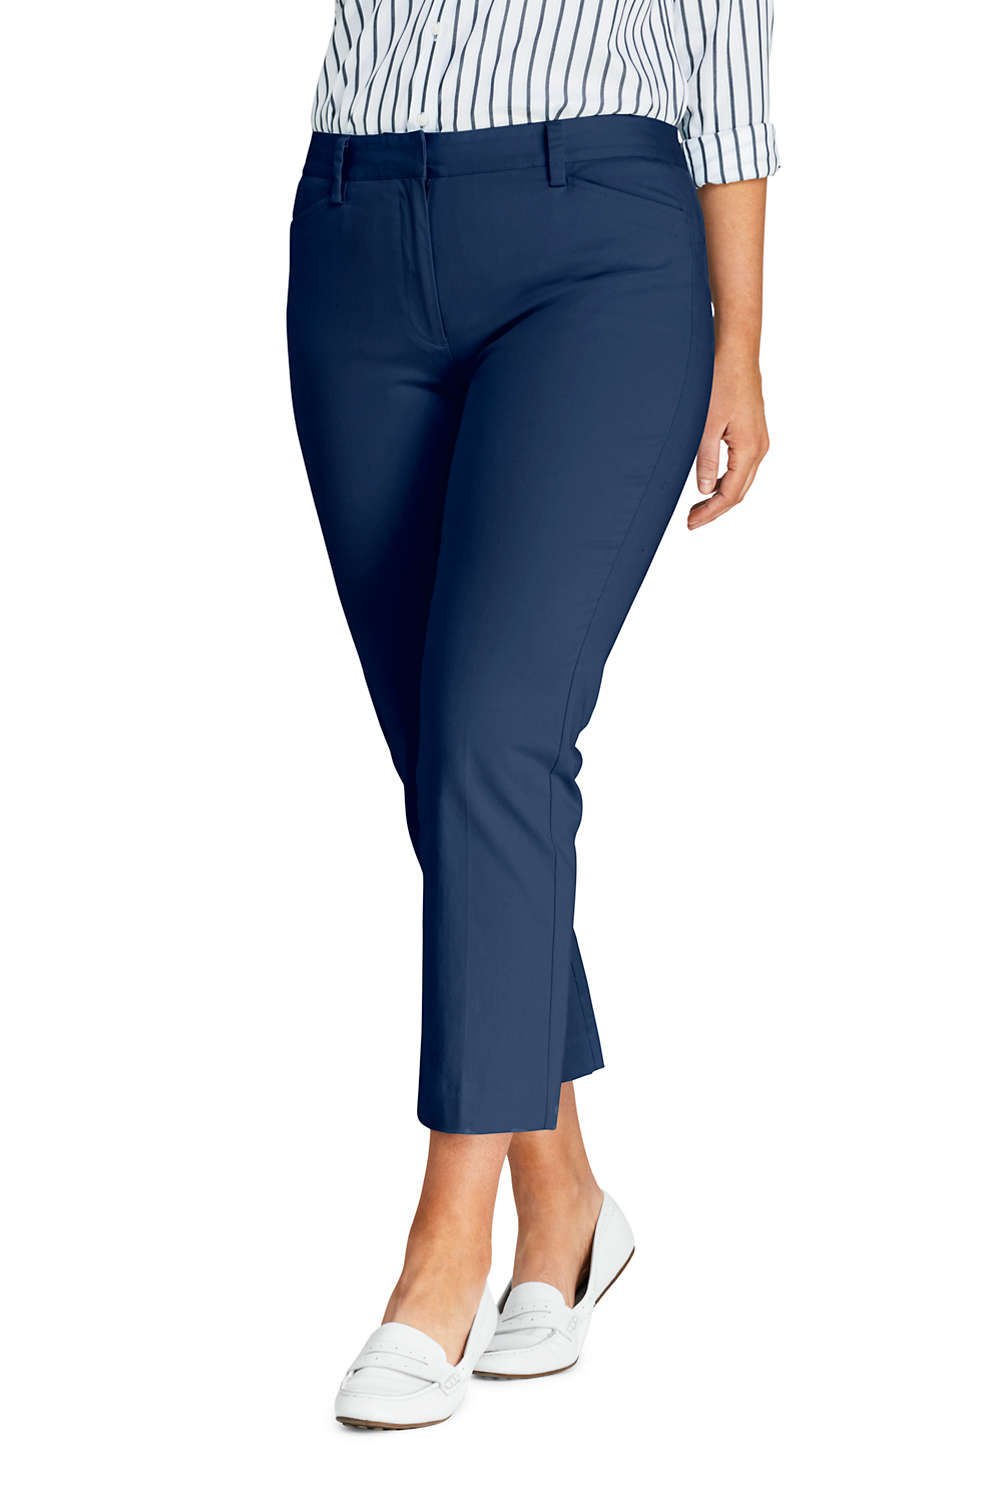 c0eeedb96530 Women's Plus Size Mid Rise Chino Capri Pants from Lands' End